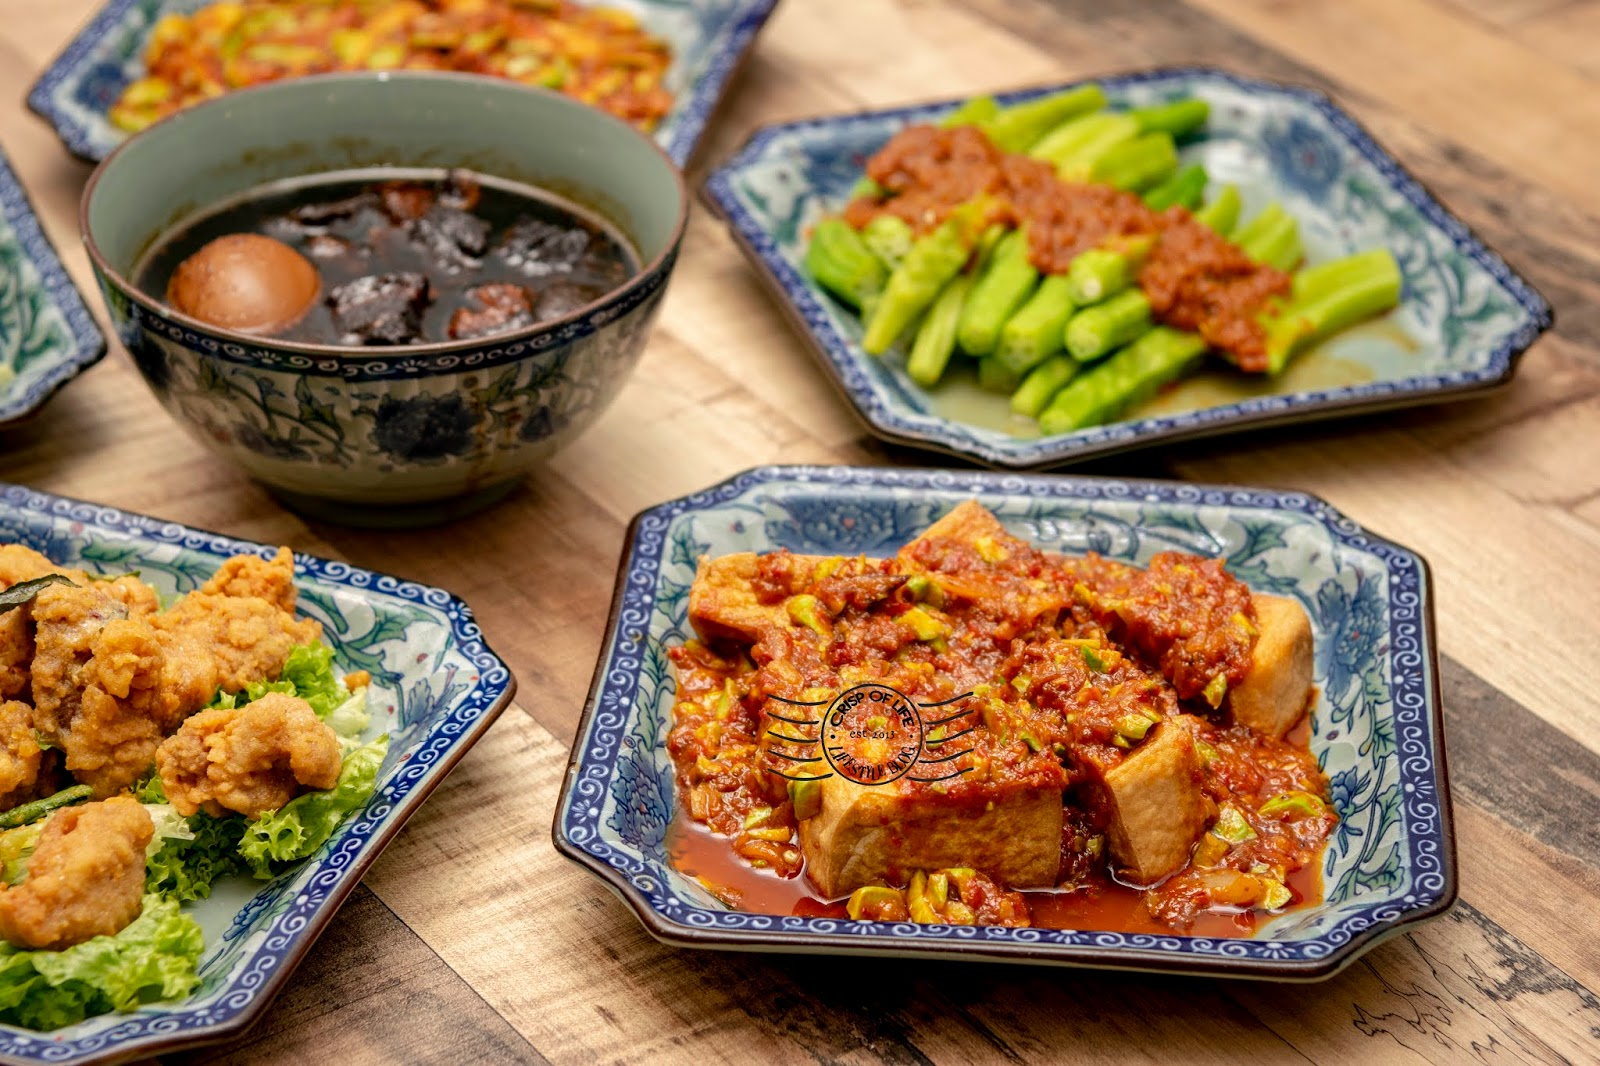 Wai Po Jia Granny's Cottage 外婆家 at Gurney Plaza Brings Traditional Home-cook Cuisine Alive!